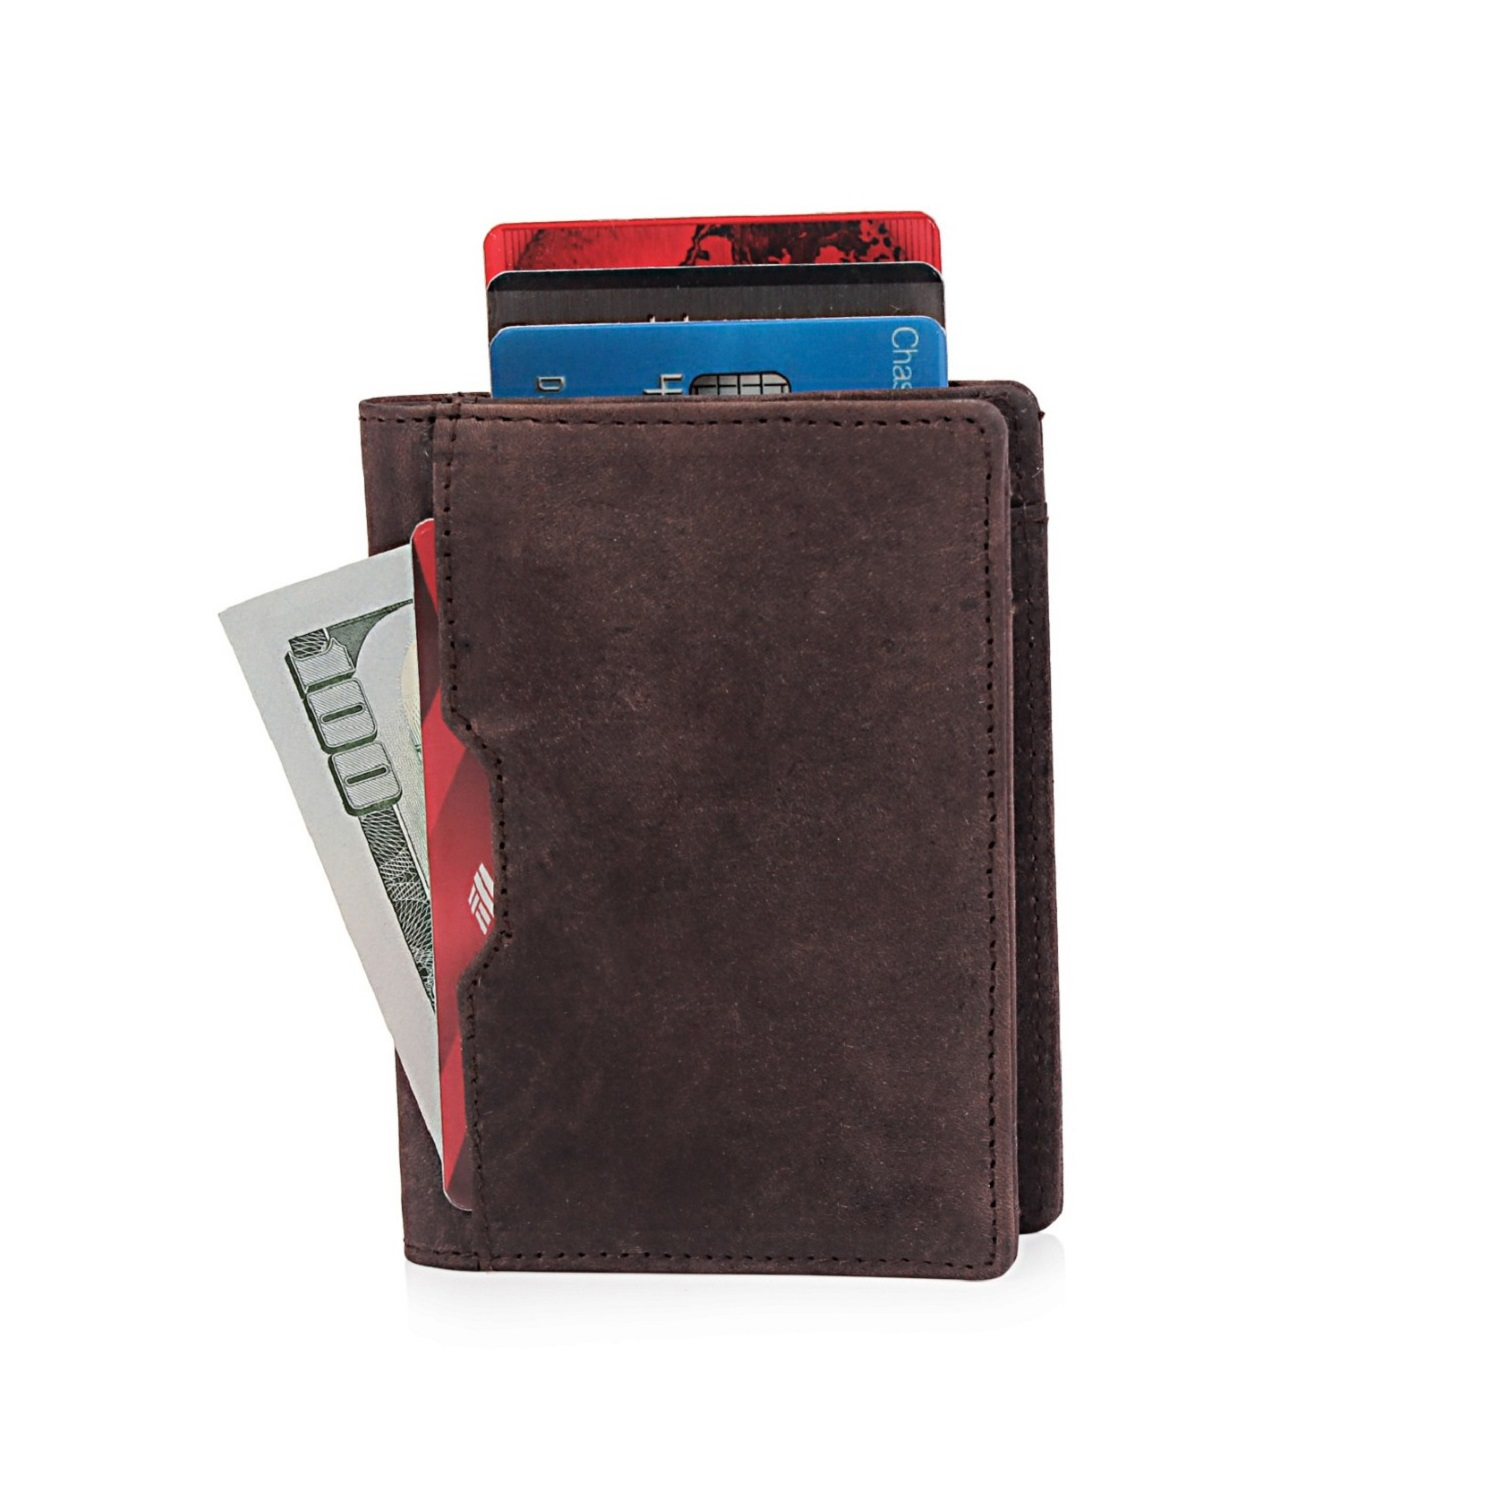 Leather Card Holder Wallet Manufacturers In Ukraine, Card Holder Wallet Suppliers In Ukraine, Card Holder Wallet Wholesalers In Ukraine, Card Holder Wallet Traders In Ukraine